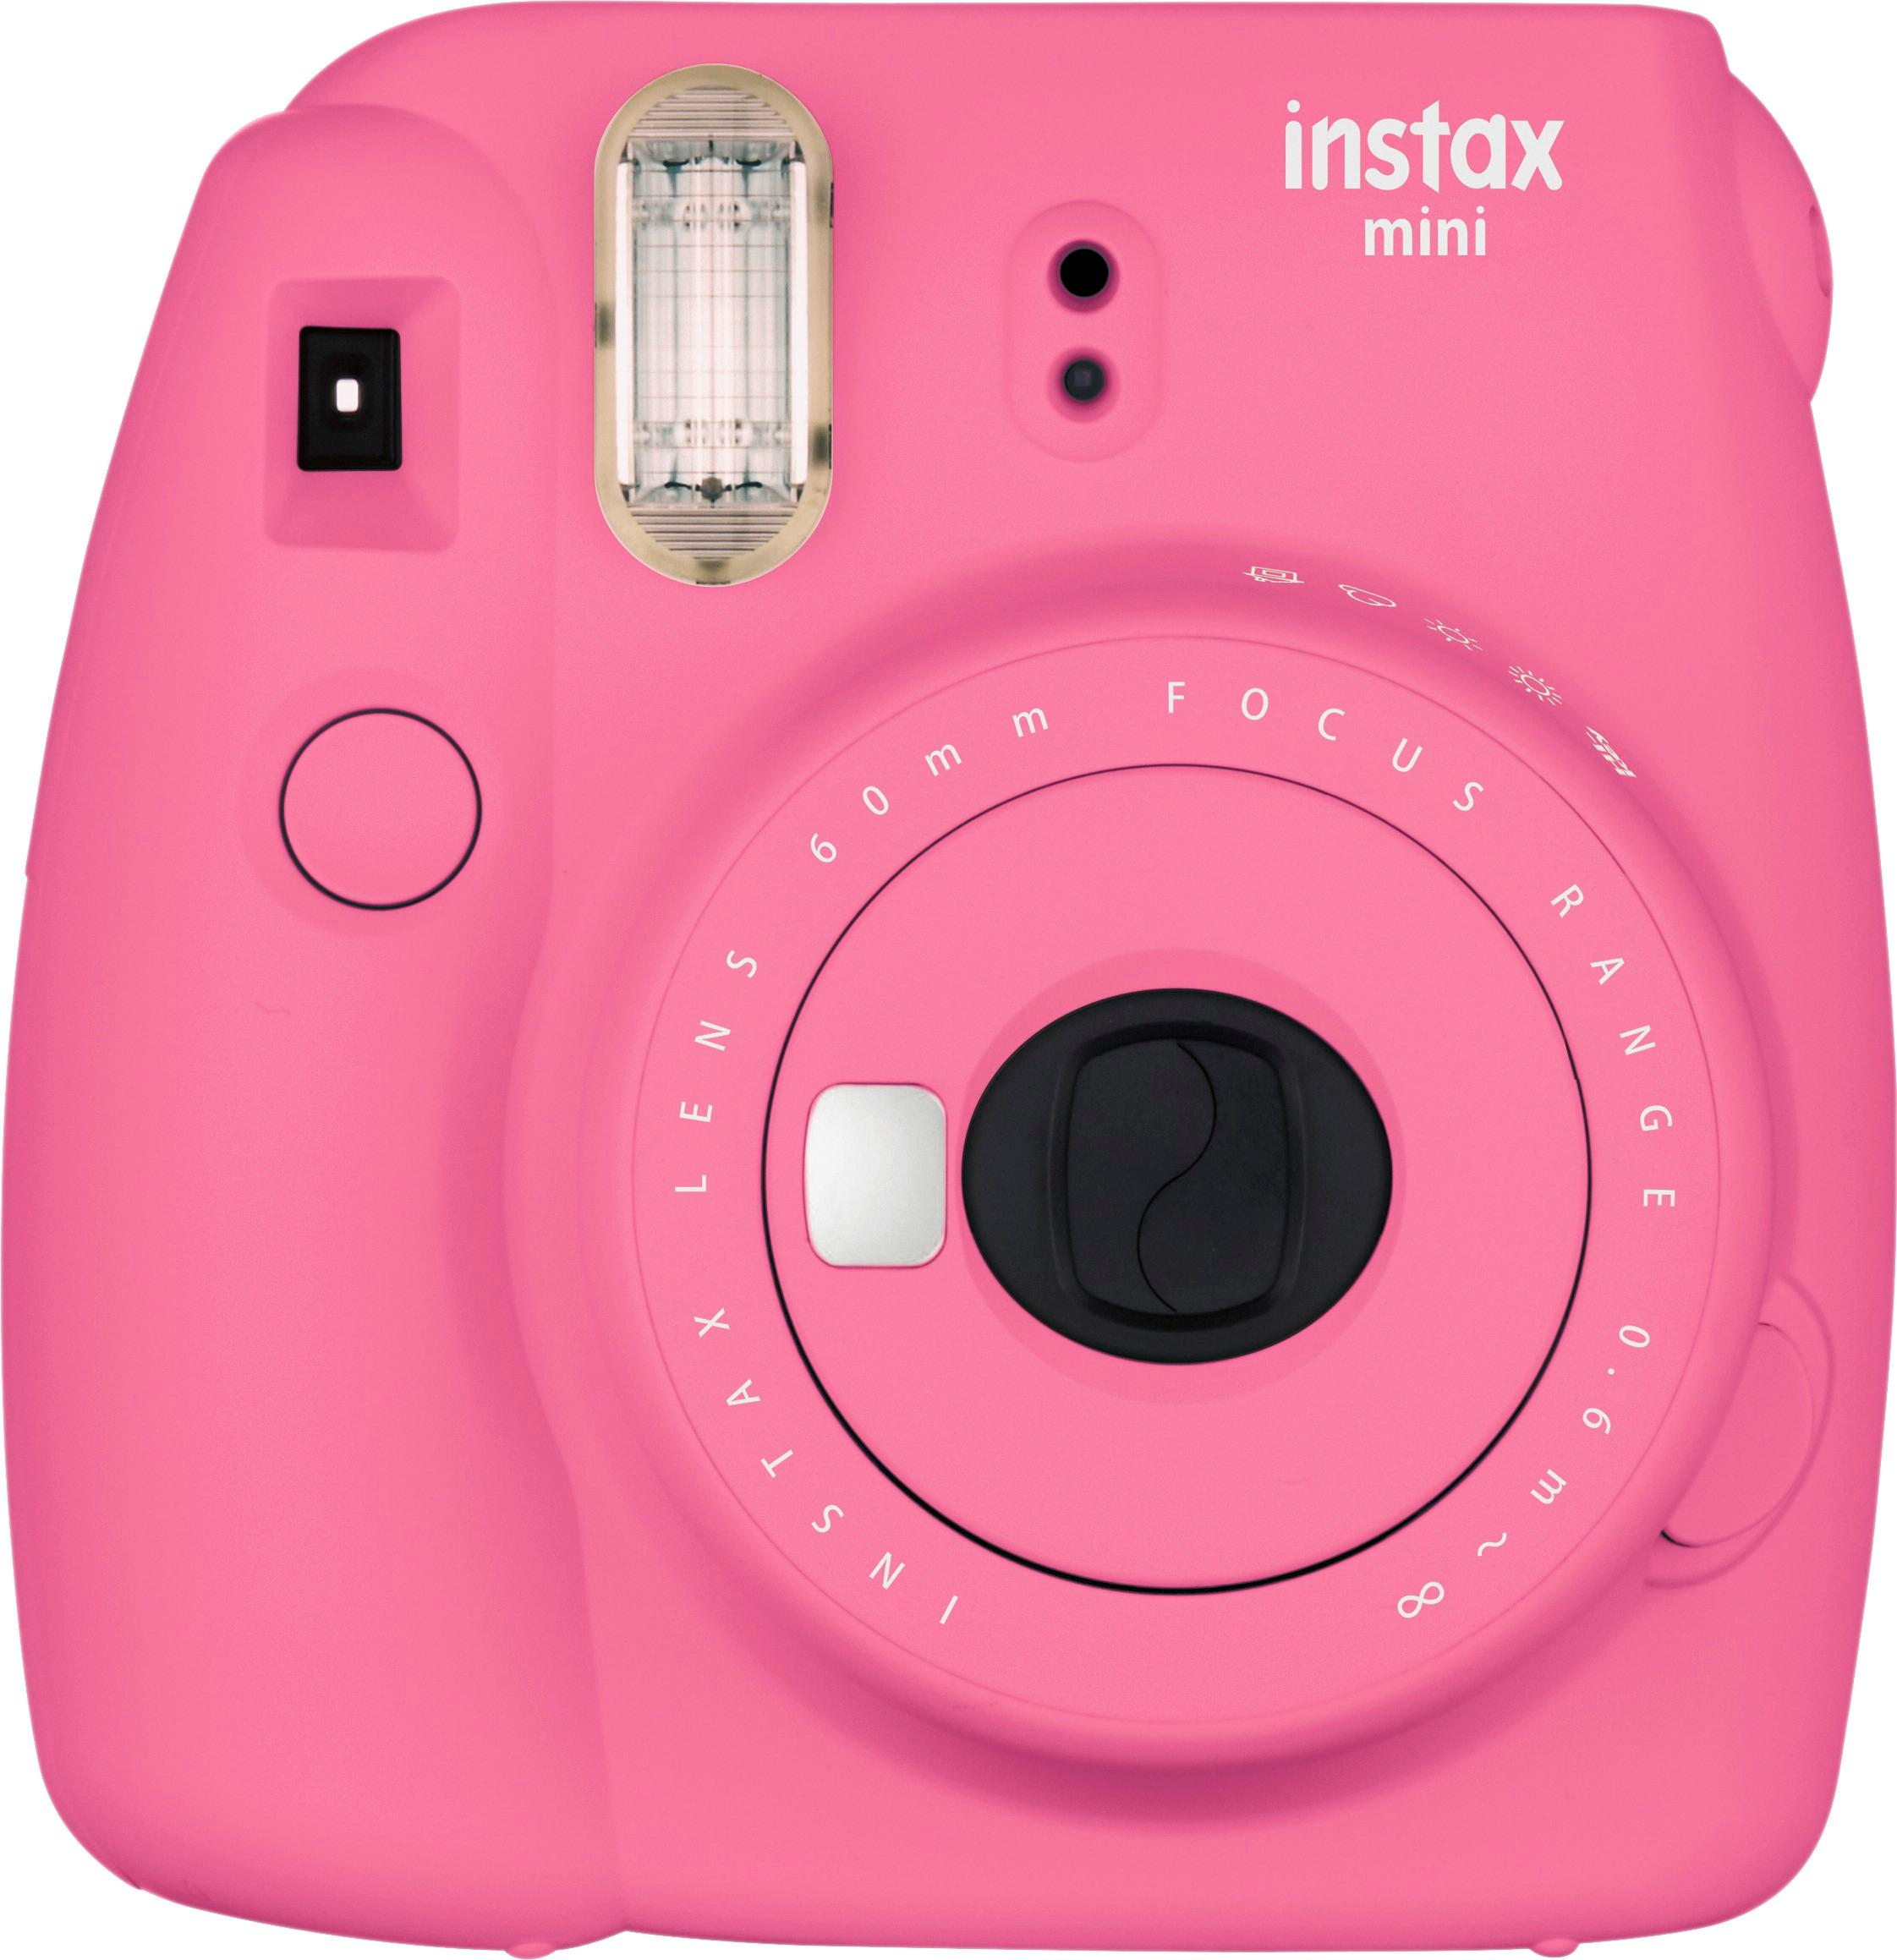 Pink Instax camera to document the fun! -